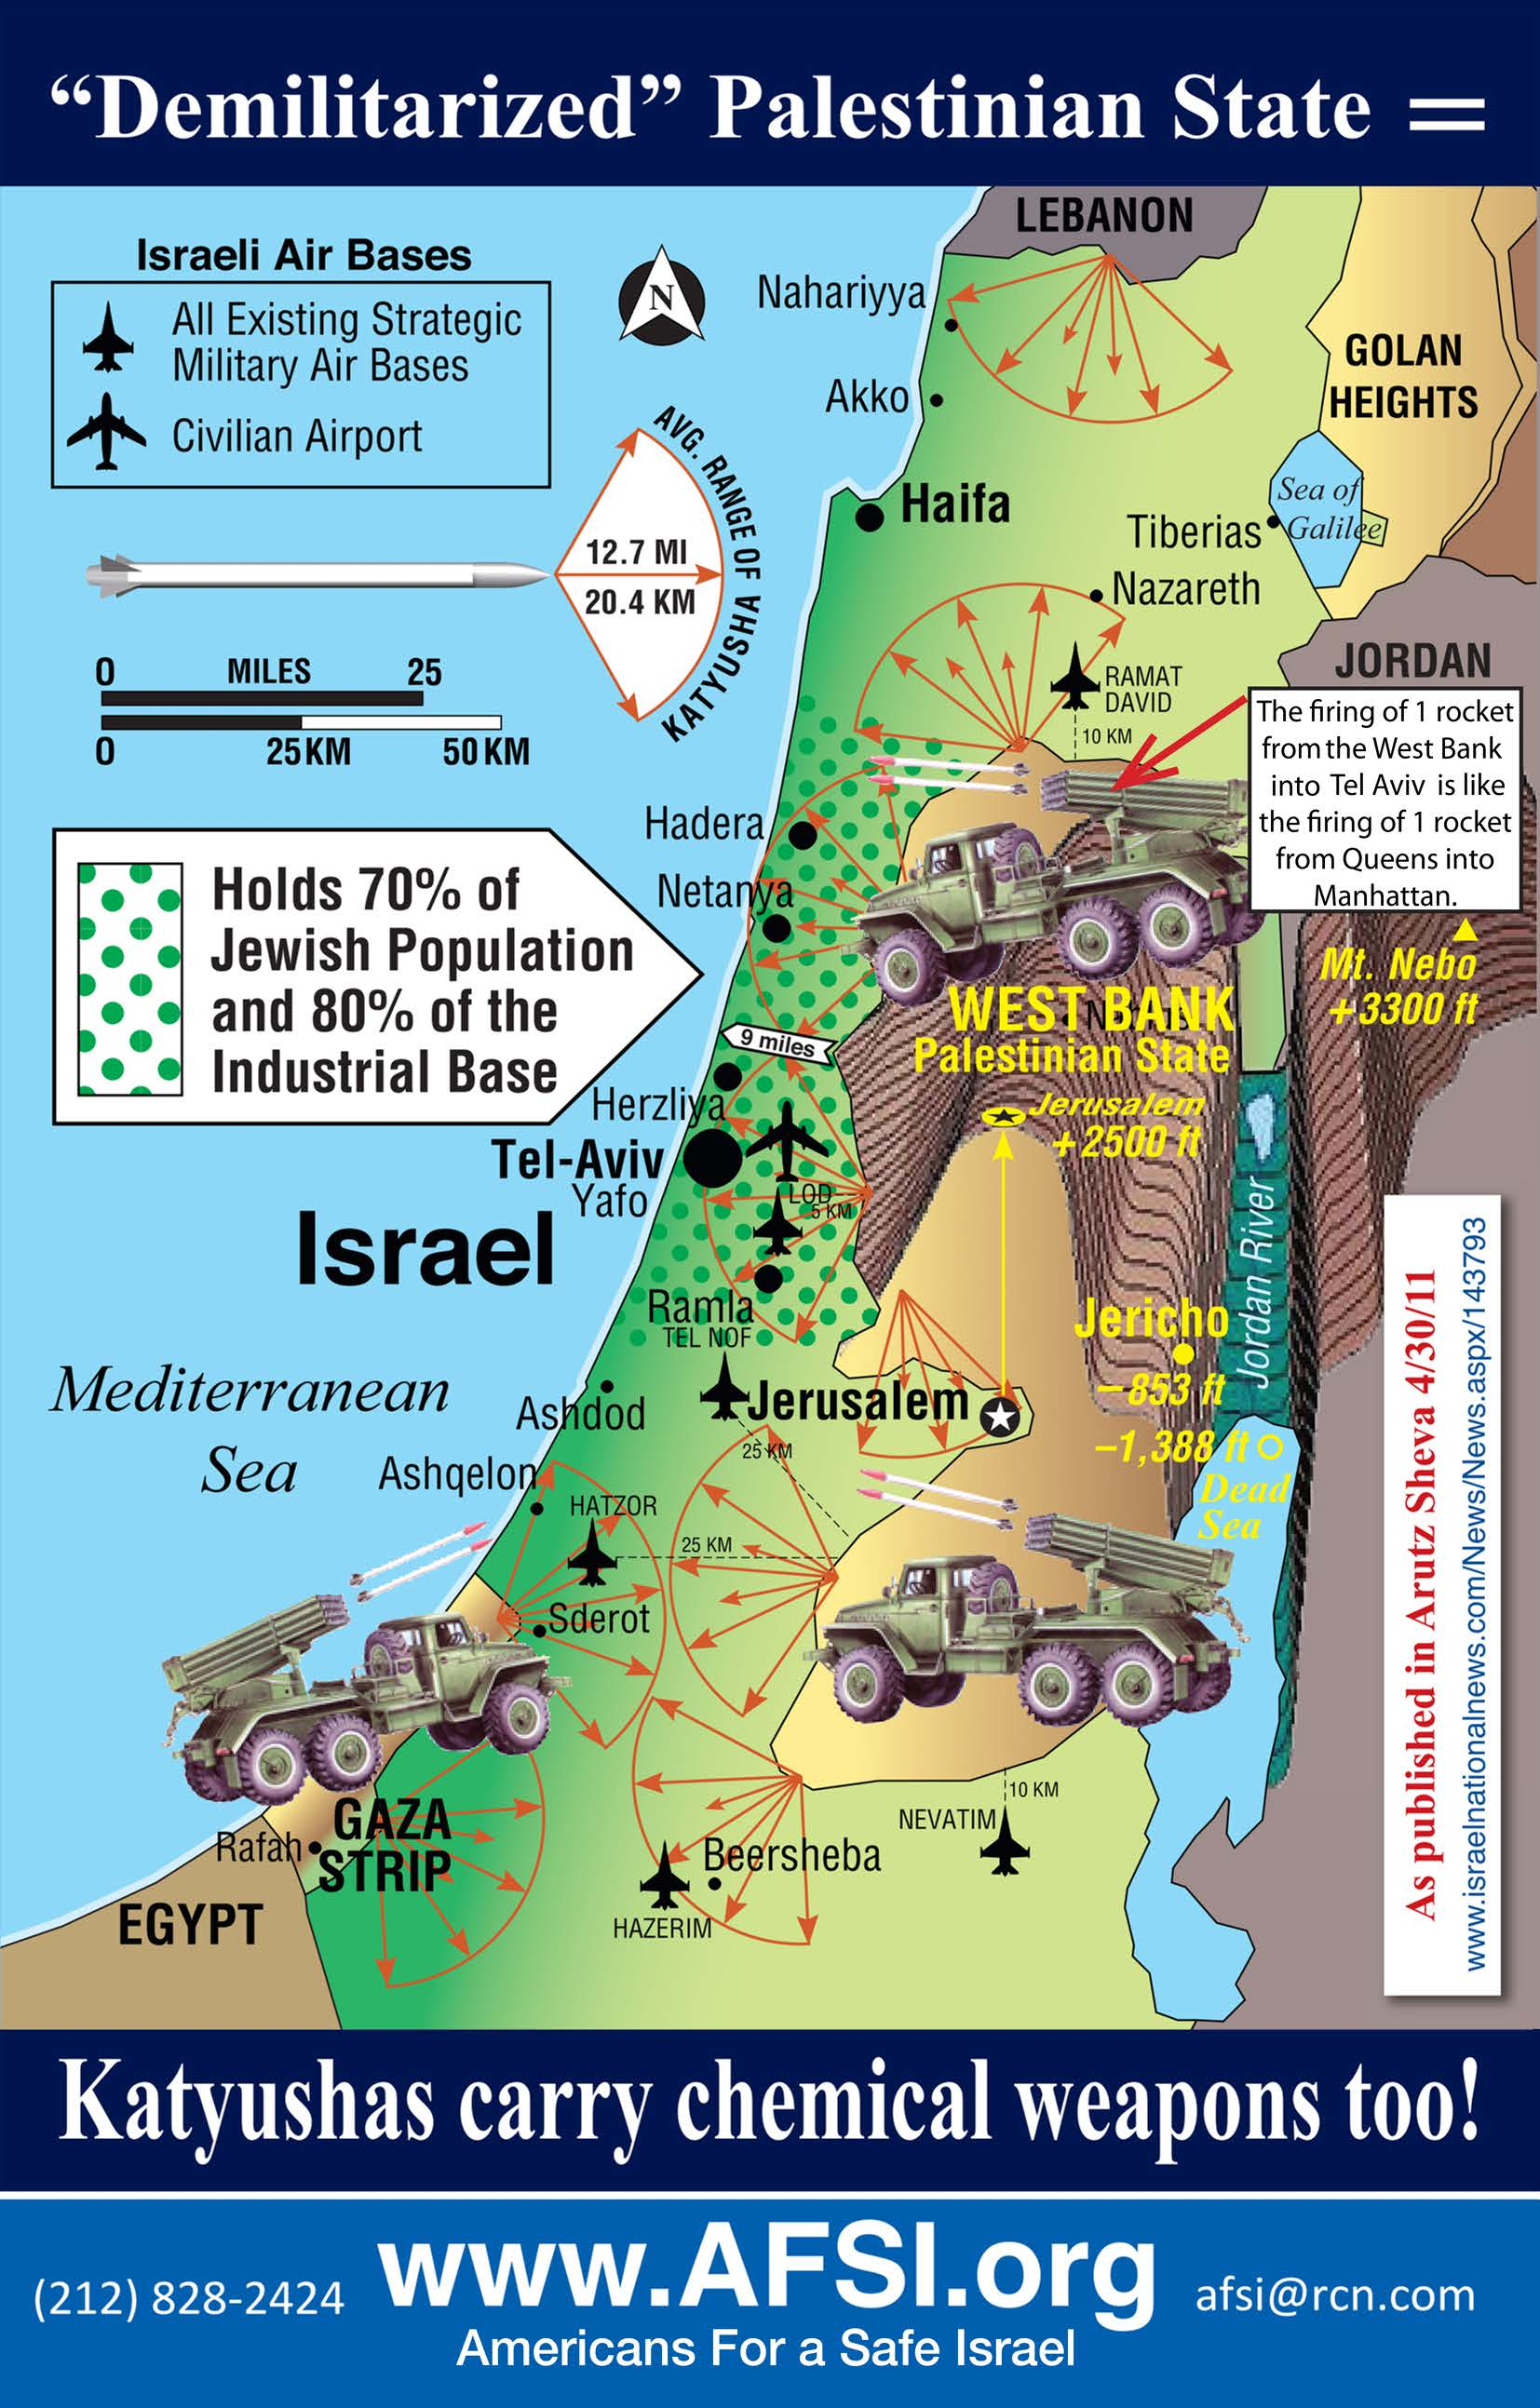 Middle East maps portray 'actual conditions' of the region